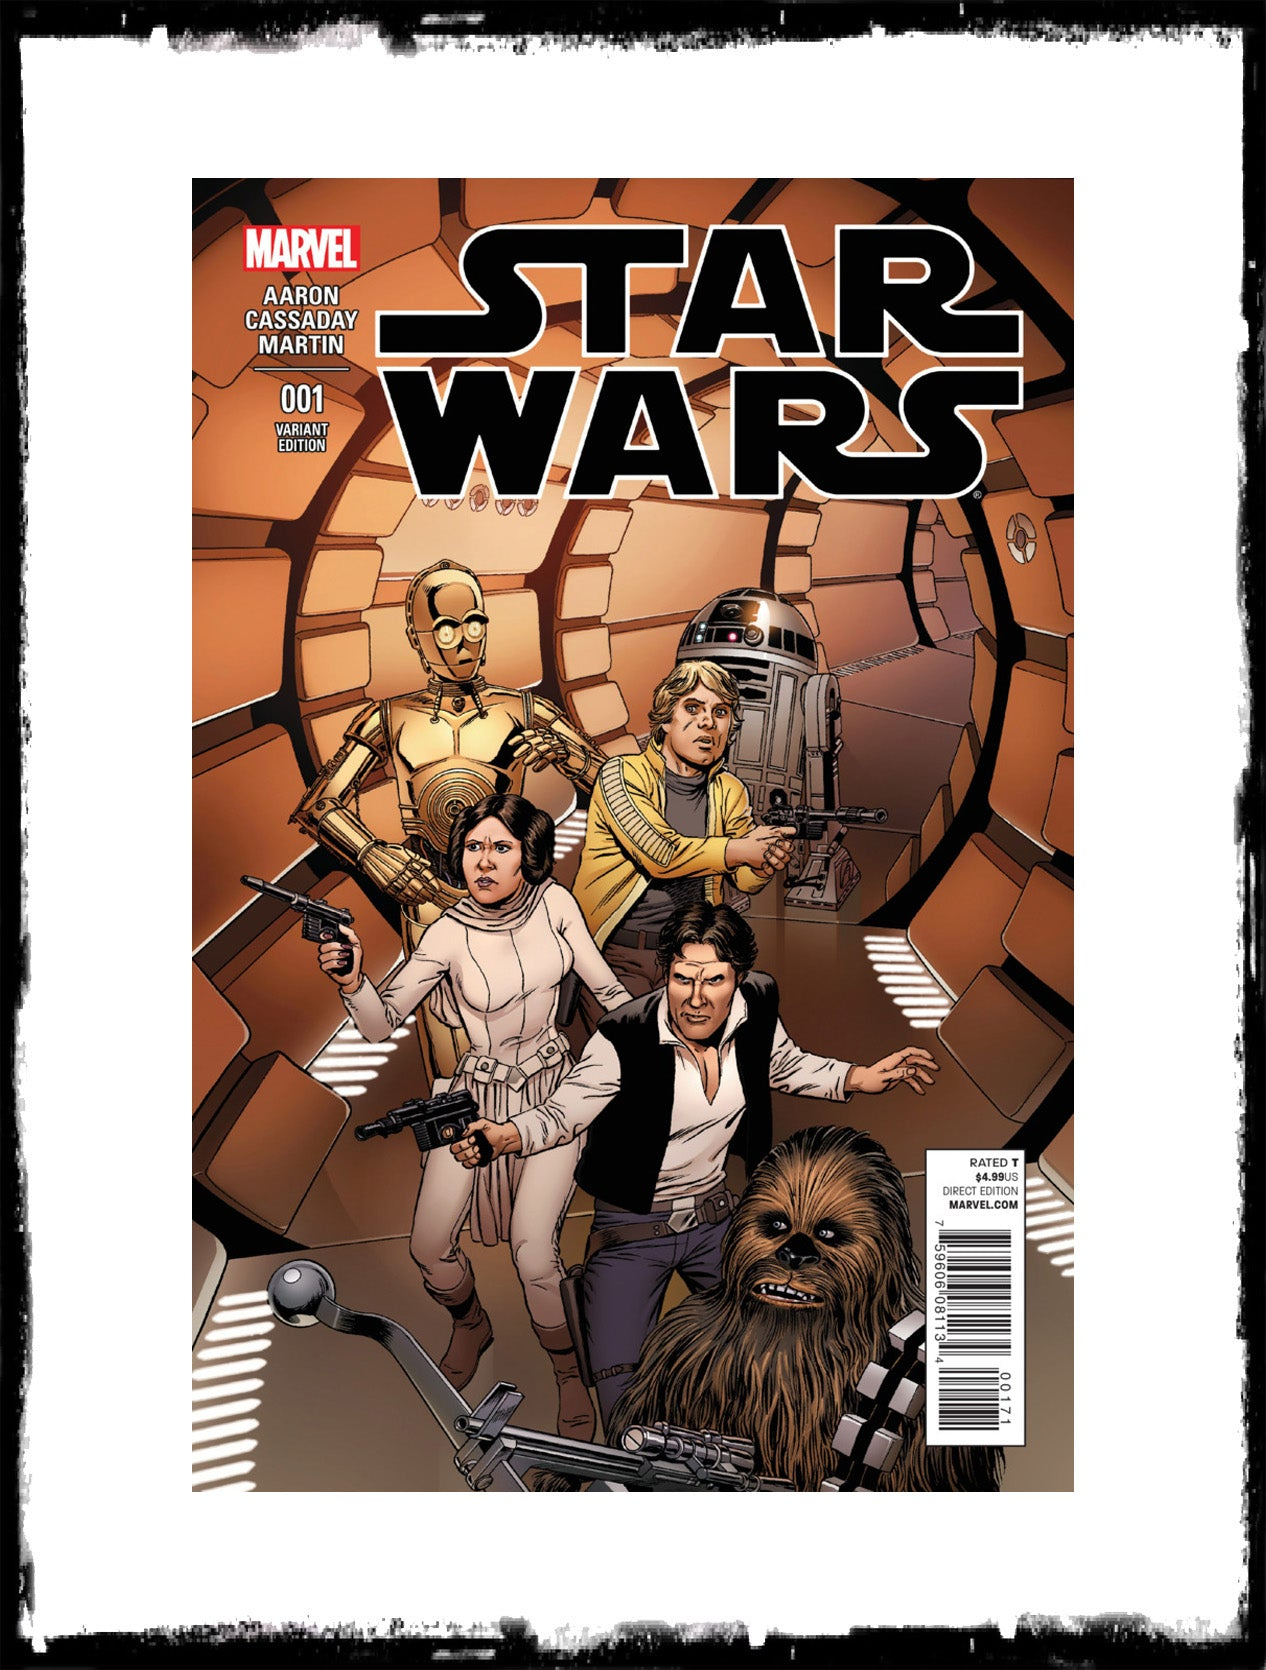 STAR WARS - #1 BOB MCLEOD VARIANT (2015 - CONDITION NM)